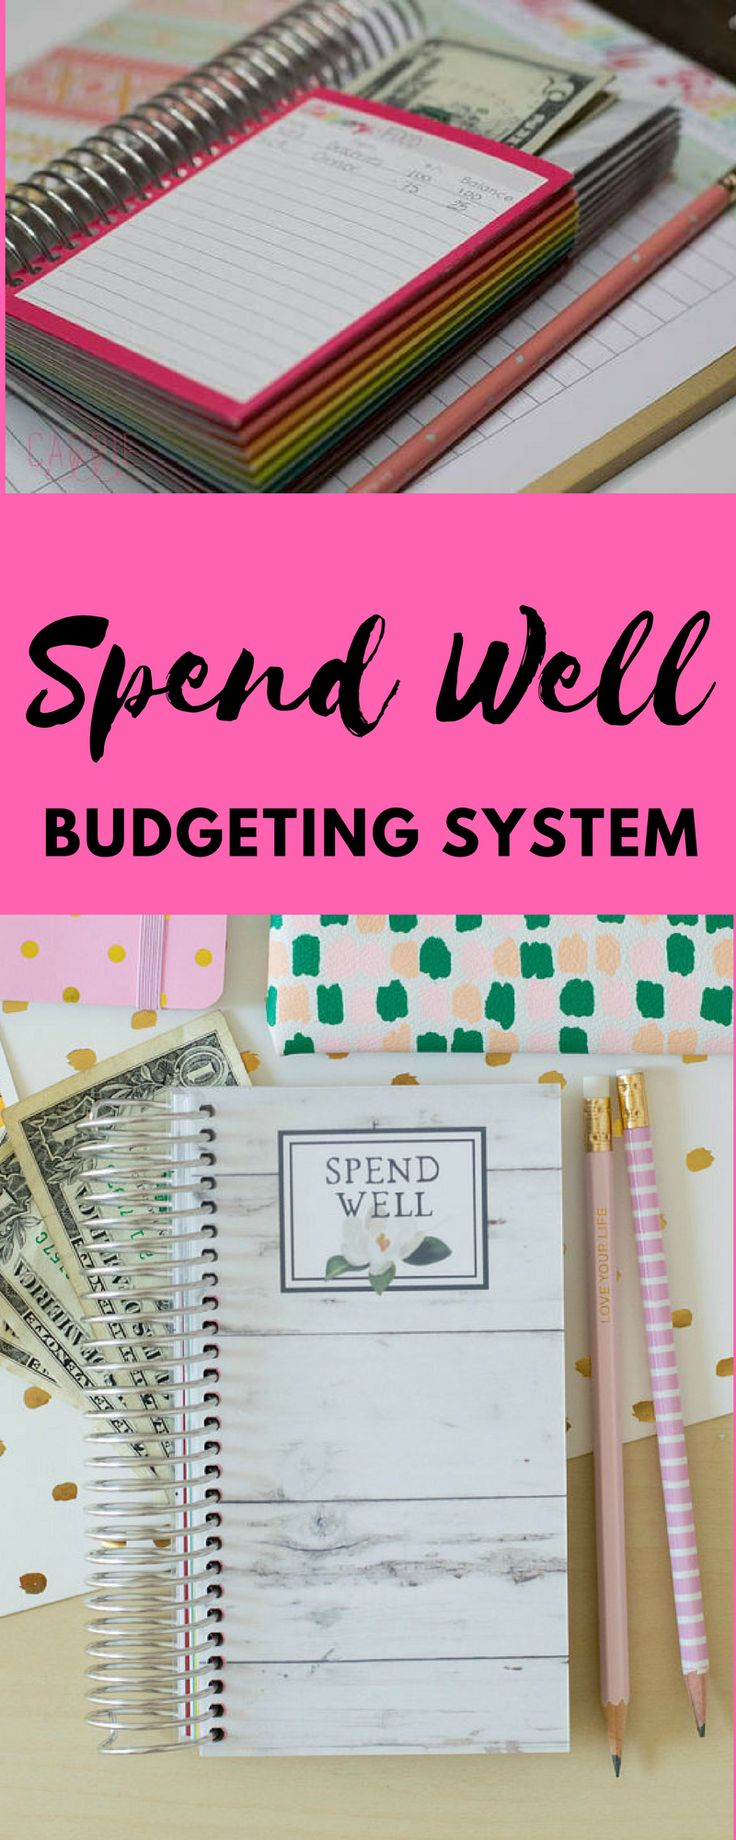 Spend Well Budgeting System - Magnolia #daveramsey #afflink